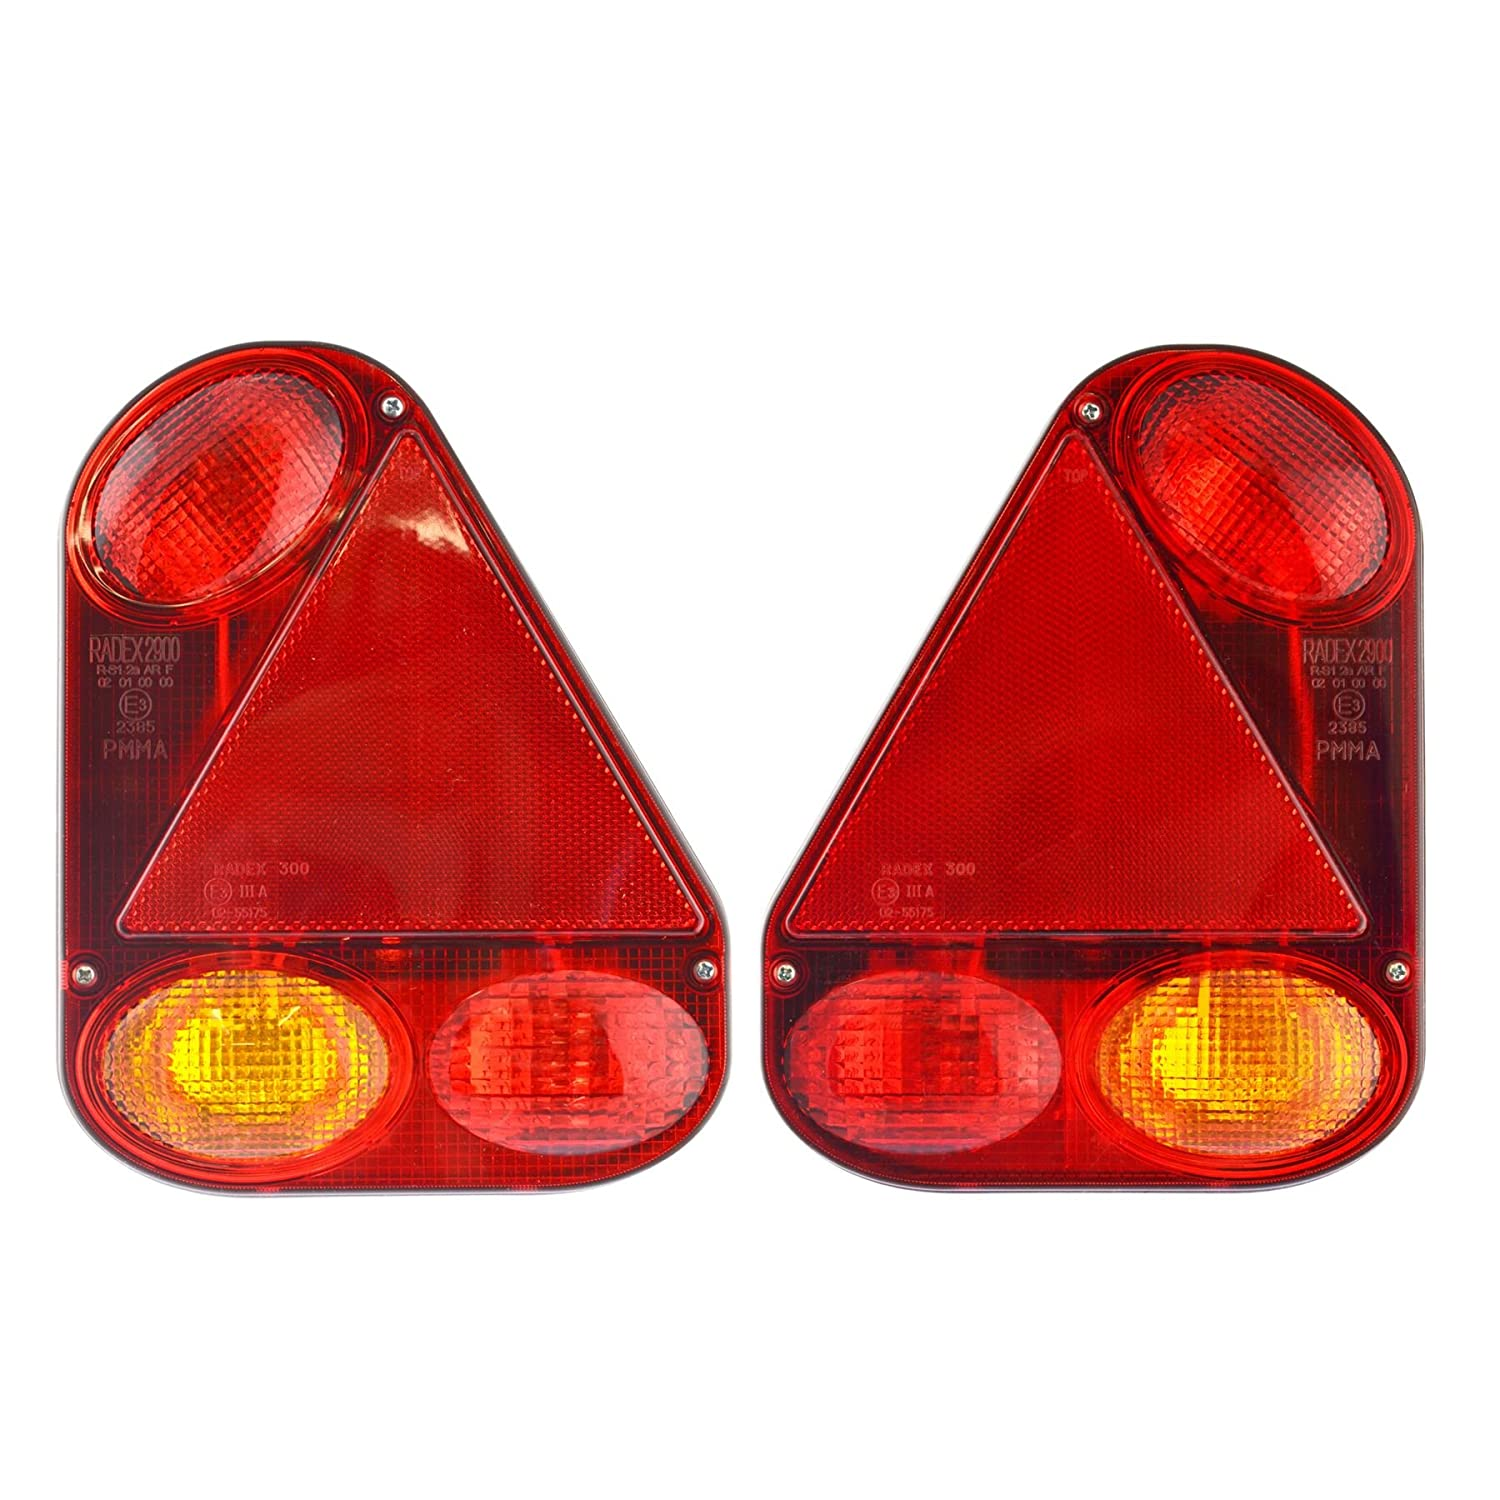 AB Tools-Maypole Trailer Lights Radex Right & Left for Ifor Williams, Indespension Lamp TR221_203